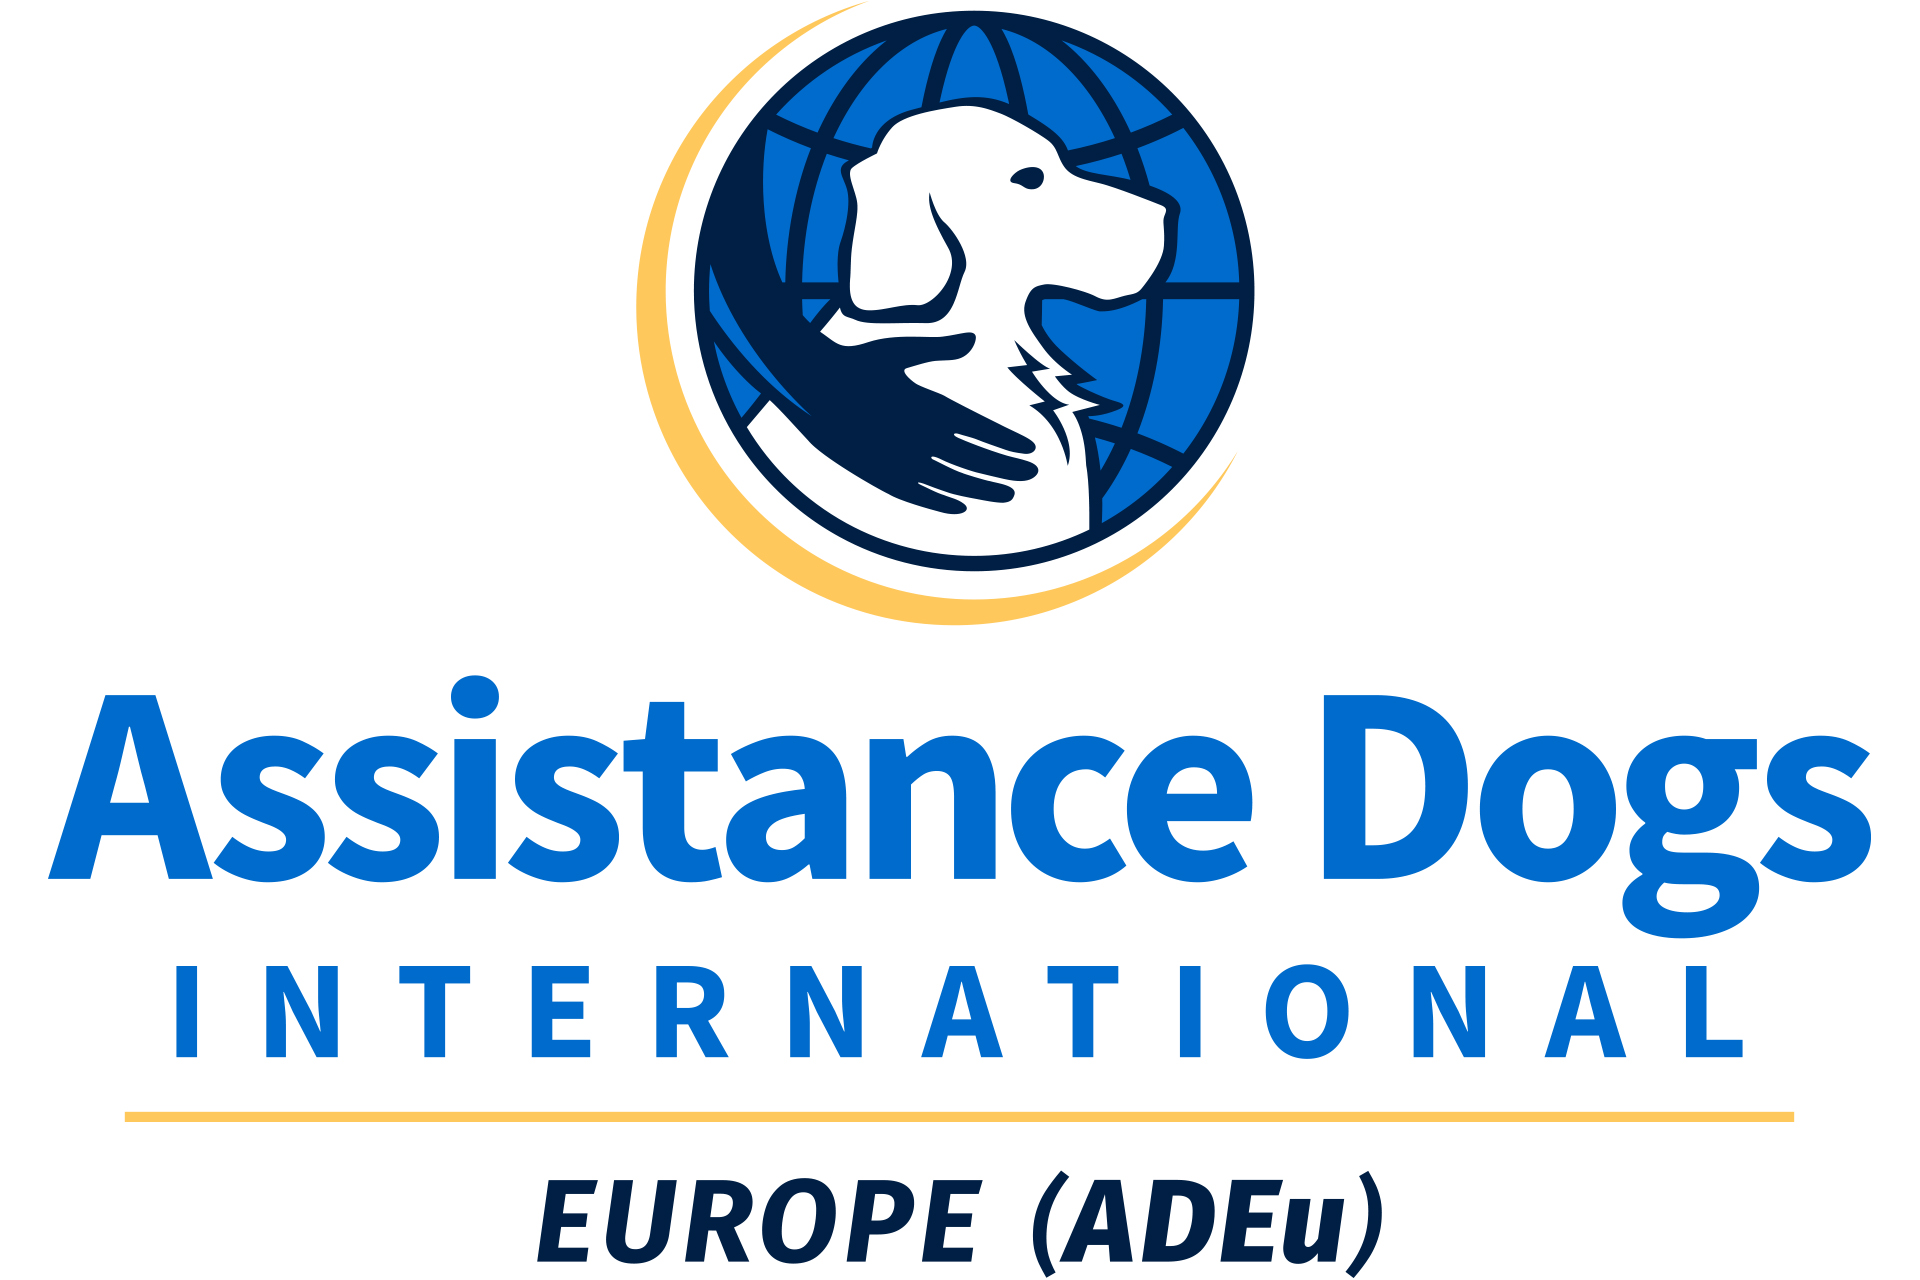 ADI Regional Europe Centered Logo